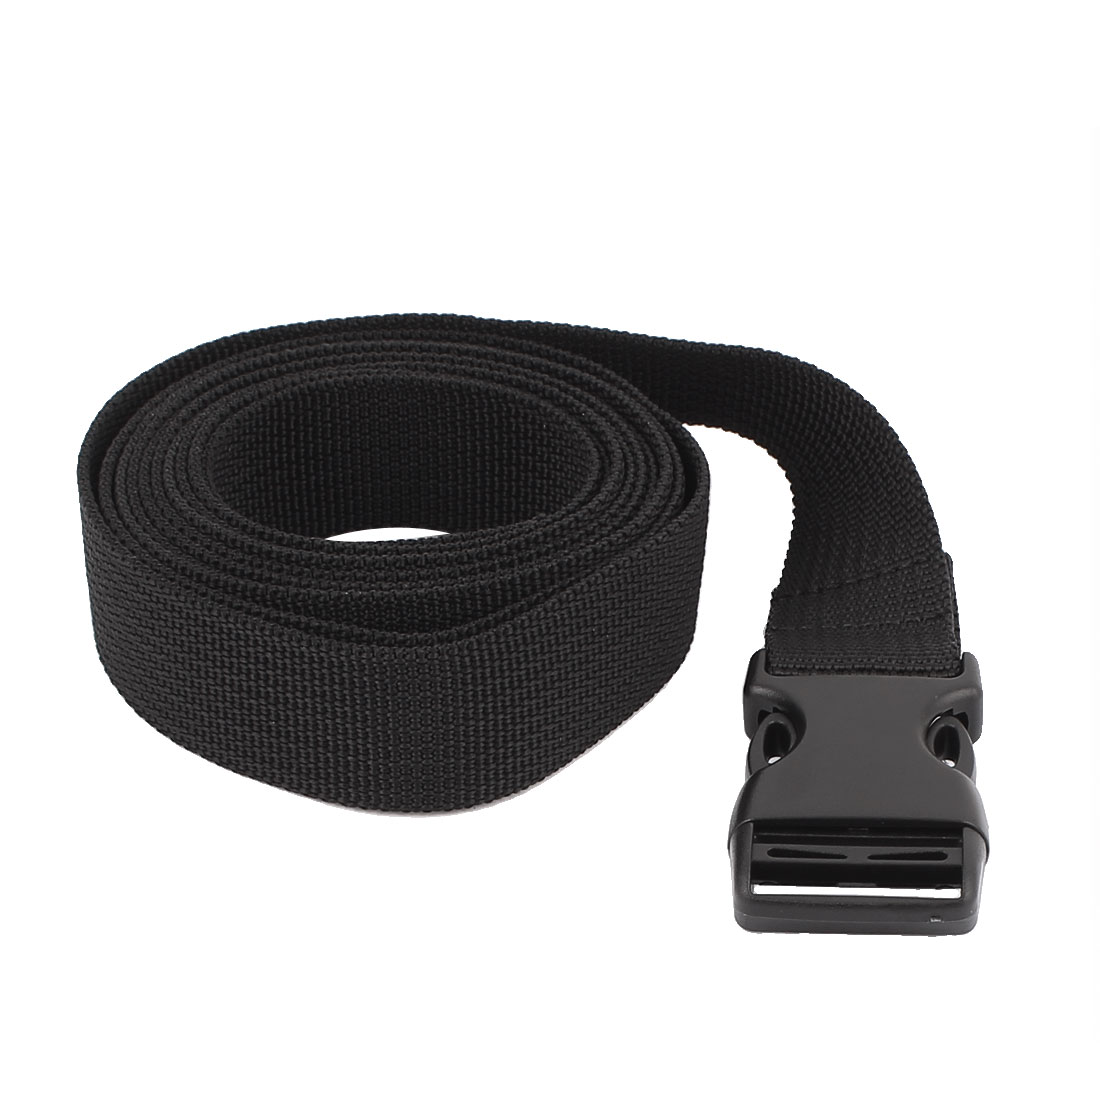 Travel Plastic Release Buckle Adjustable Luggage Backpack Baggage Strap Belt Band 2M Length 25mm Width